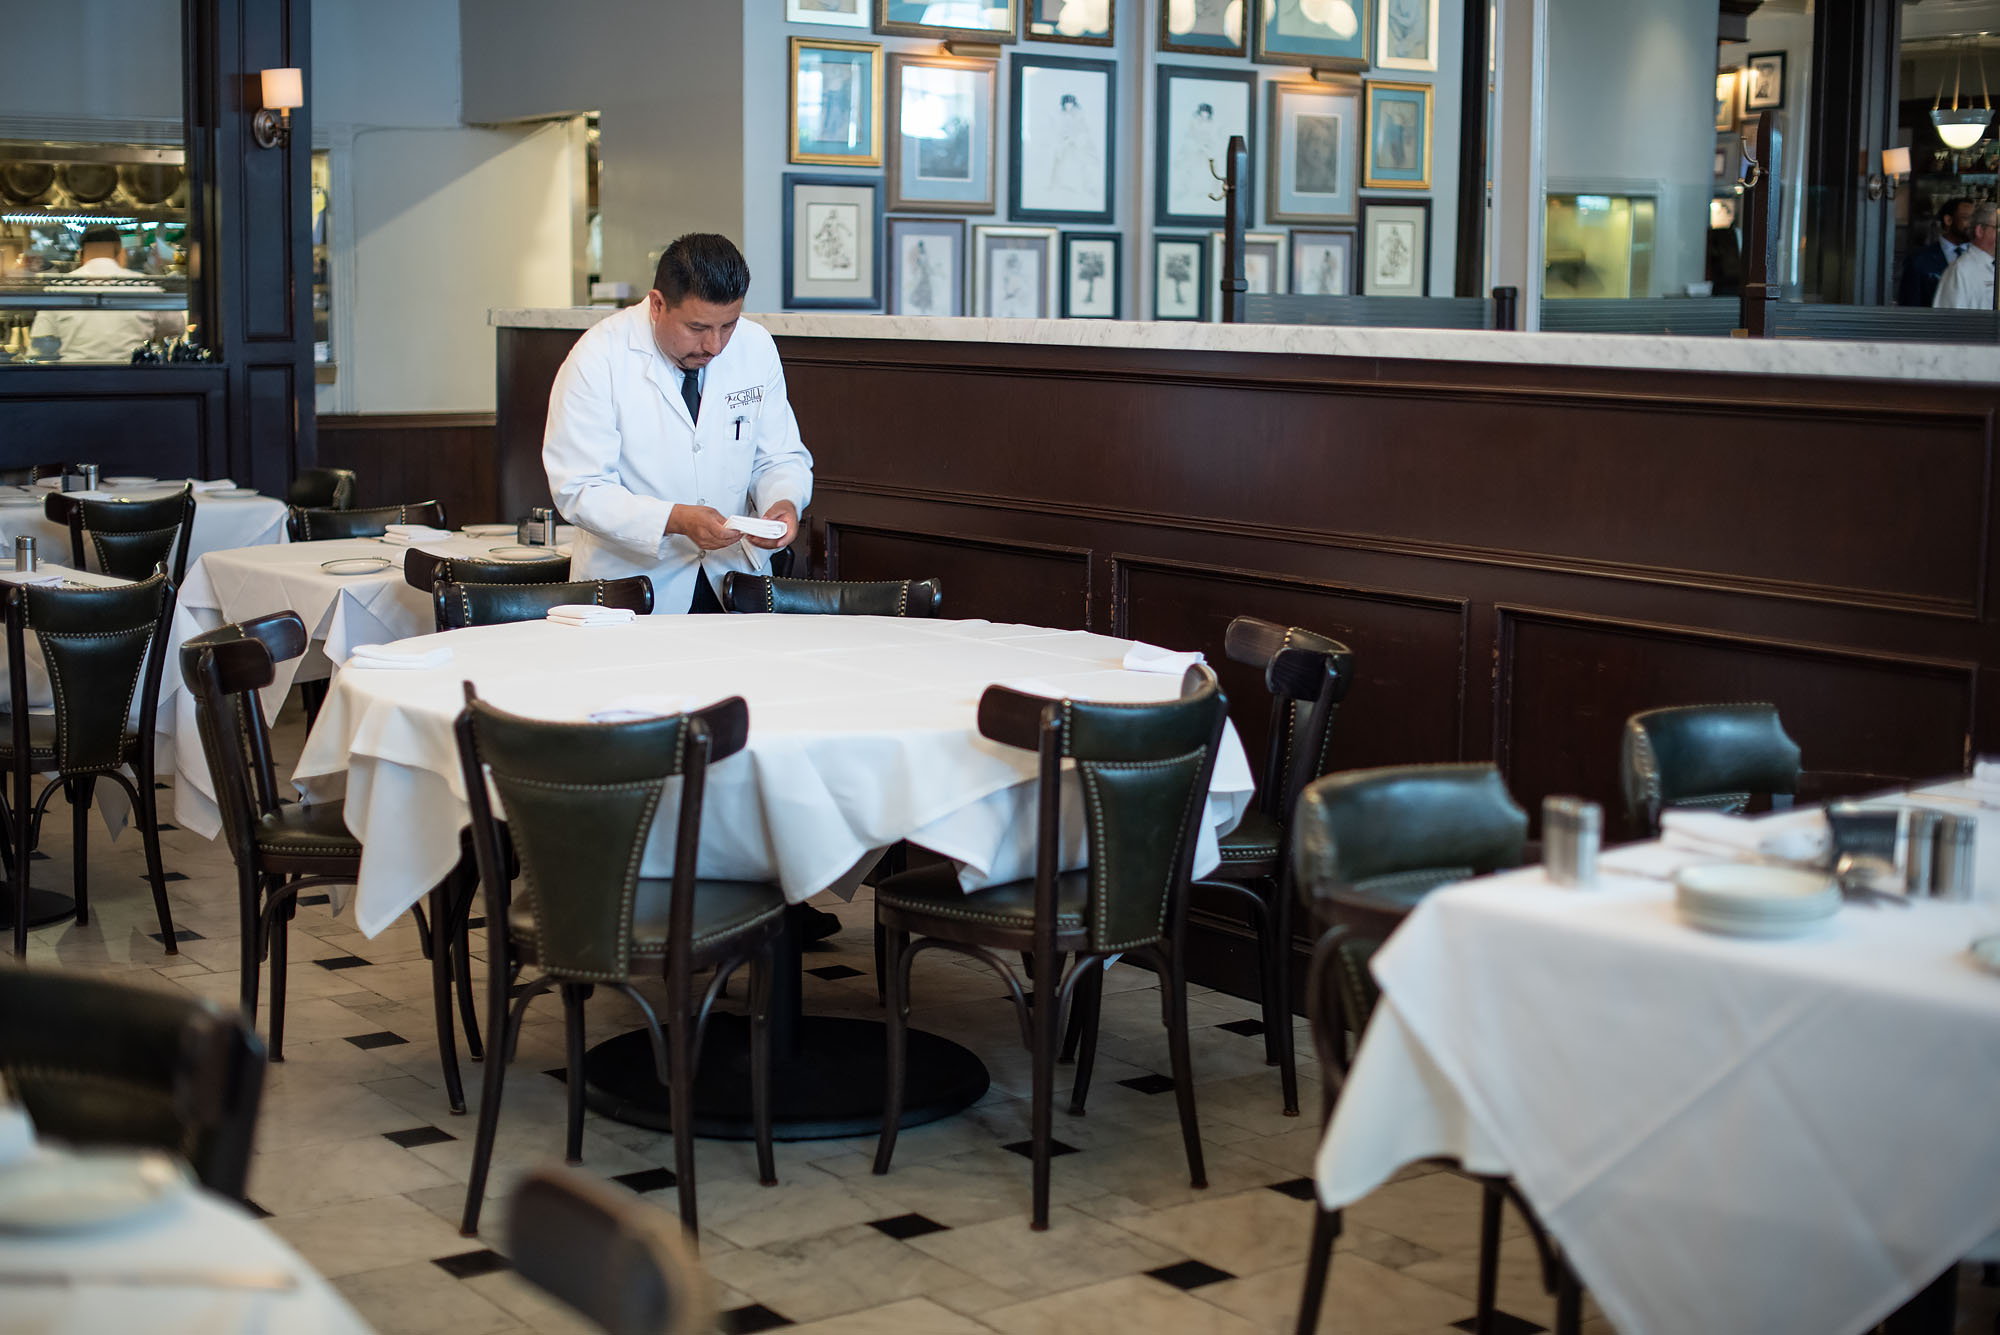 A server sets down napkins at a fine dining restaurant in prep for service.